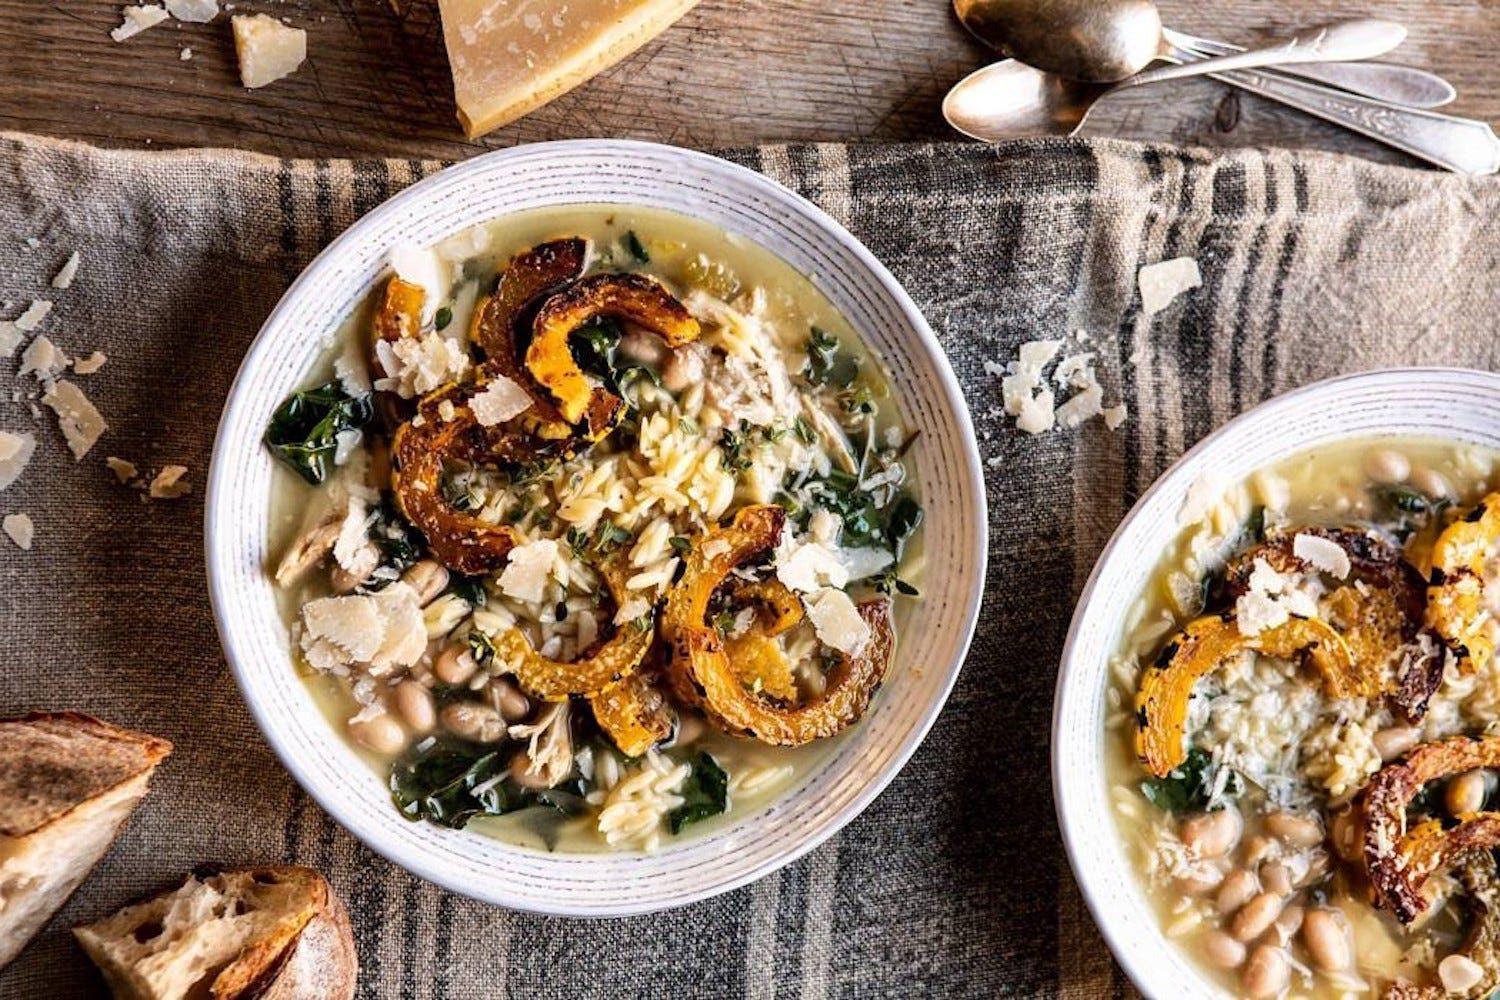 A bowl of chicken white bean soup with squash slices, sitting on a striped kitchen towel